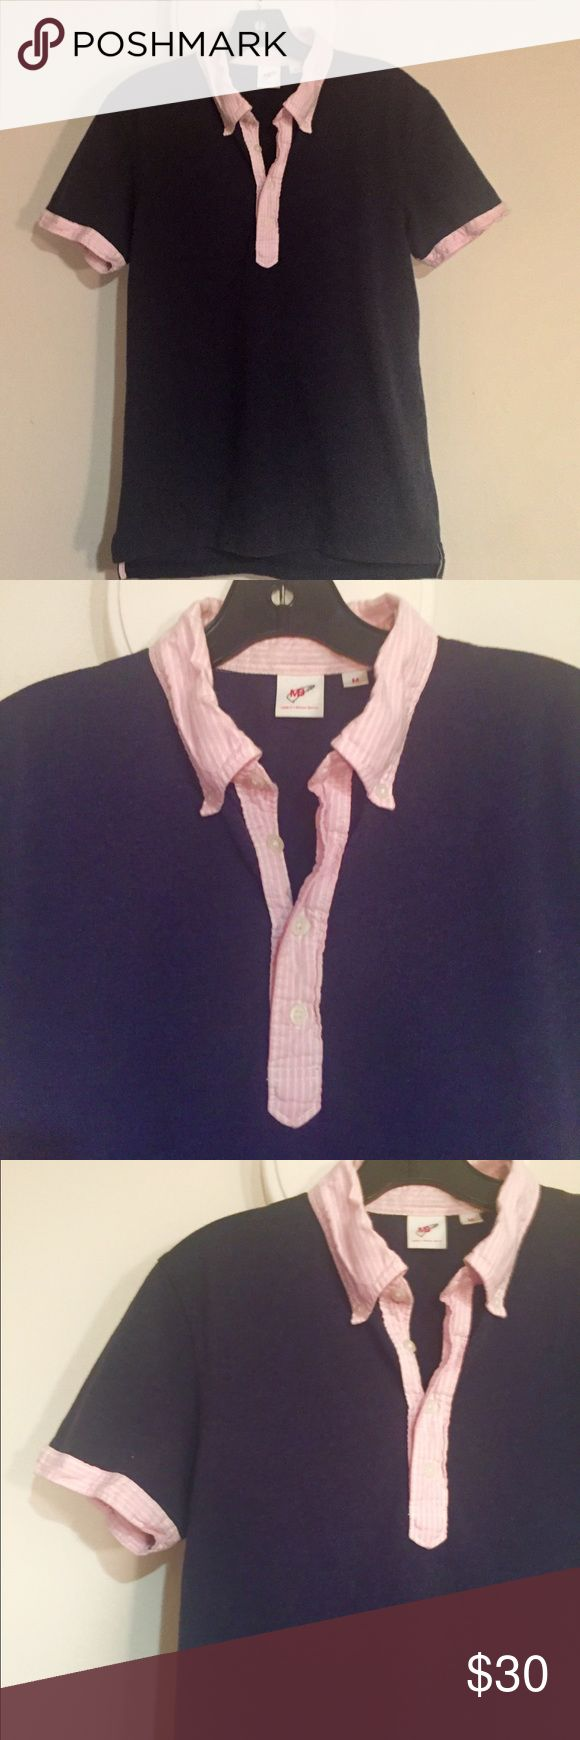 Michael Bastian & Uniqlo Blue W/ Pink Polo Med Michael Bastian and Uniqlo collaboration Blue with Pink pinstripe detail polo shirt.  Size medium, in perfect condition.   No longer available in stores. Michael Bastian/Uniqlo Shirts Polos